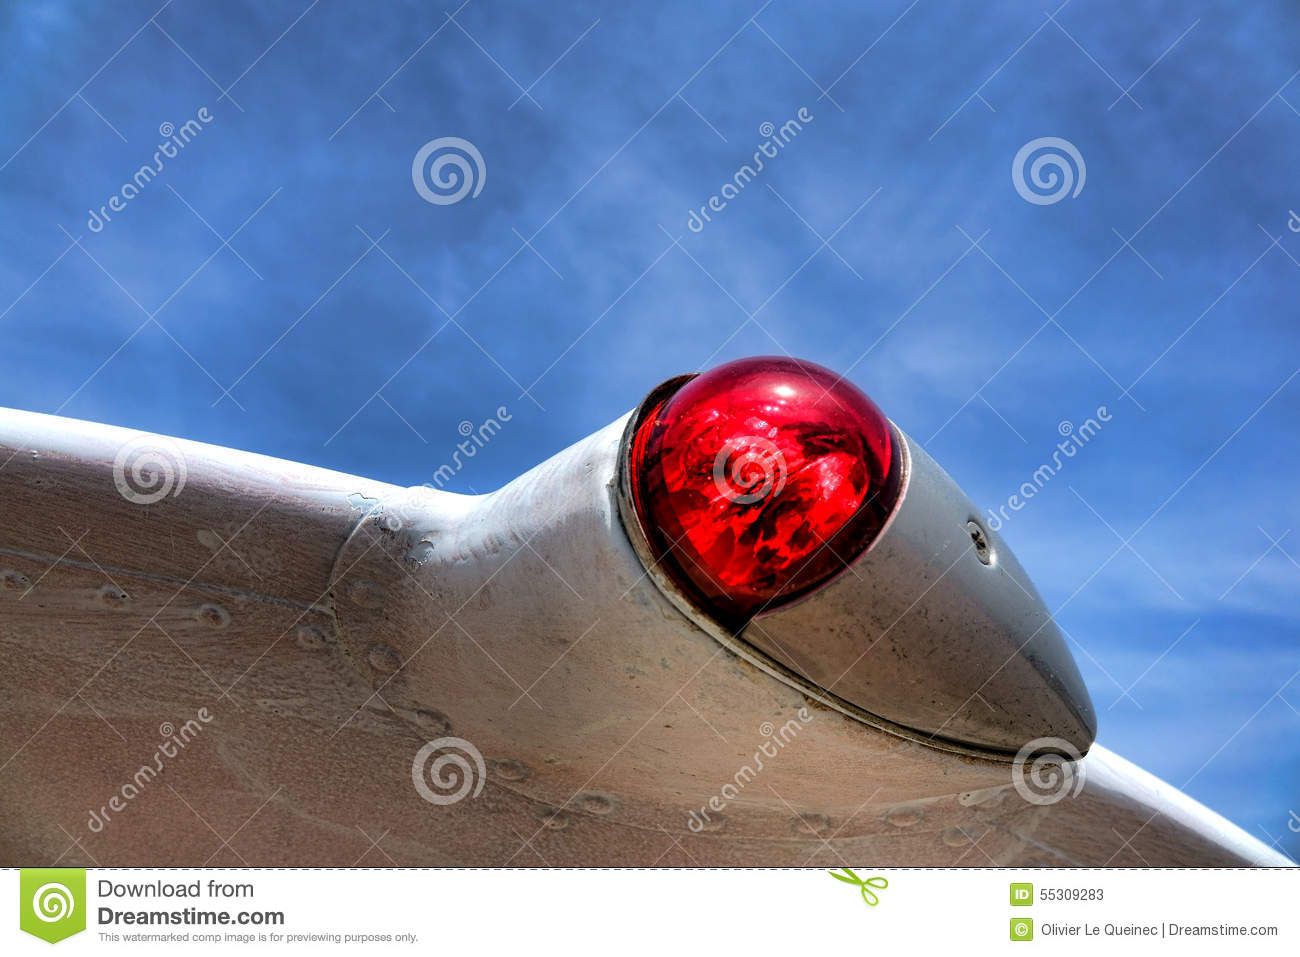 plane-left-wing-navigation-red-light-pos